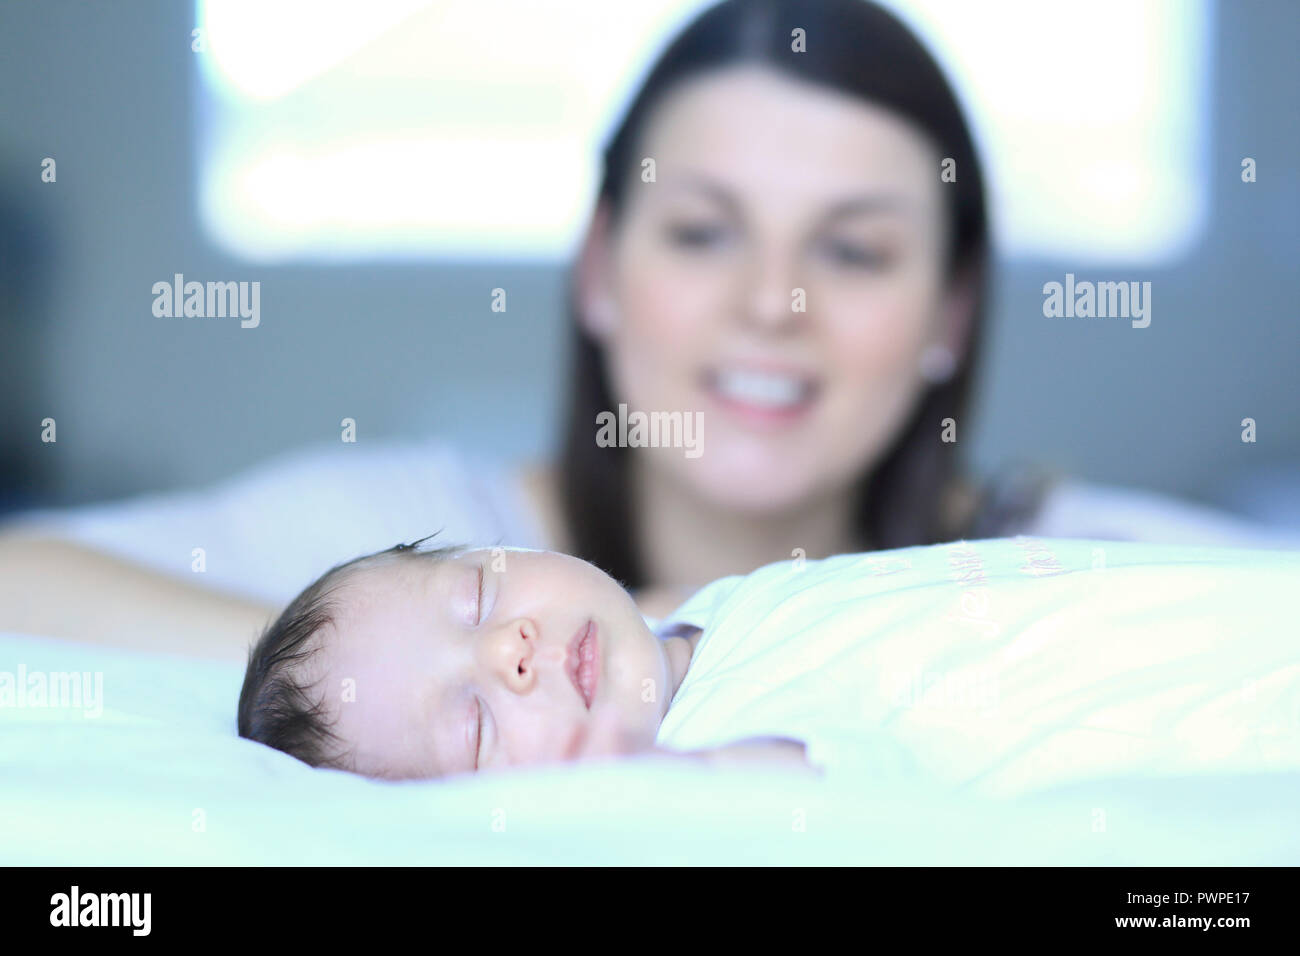 Baby with mother at home - Stock Image